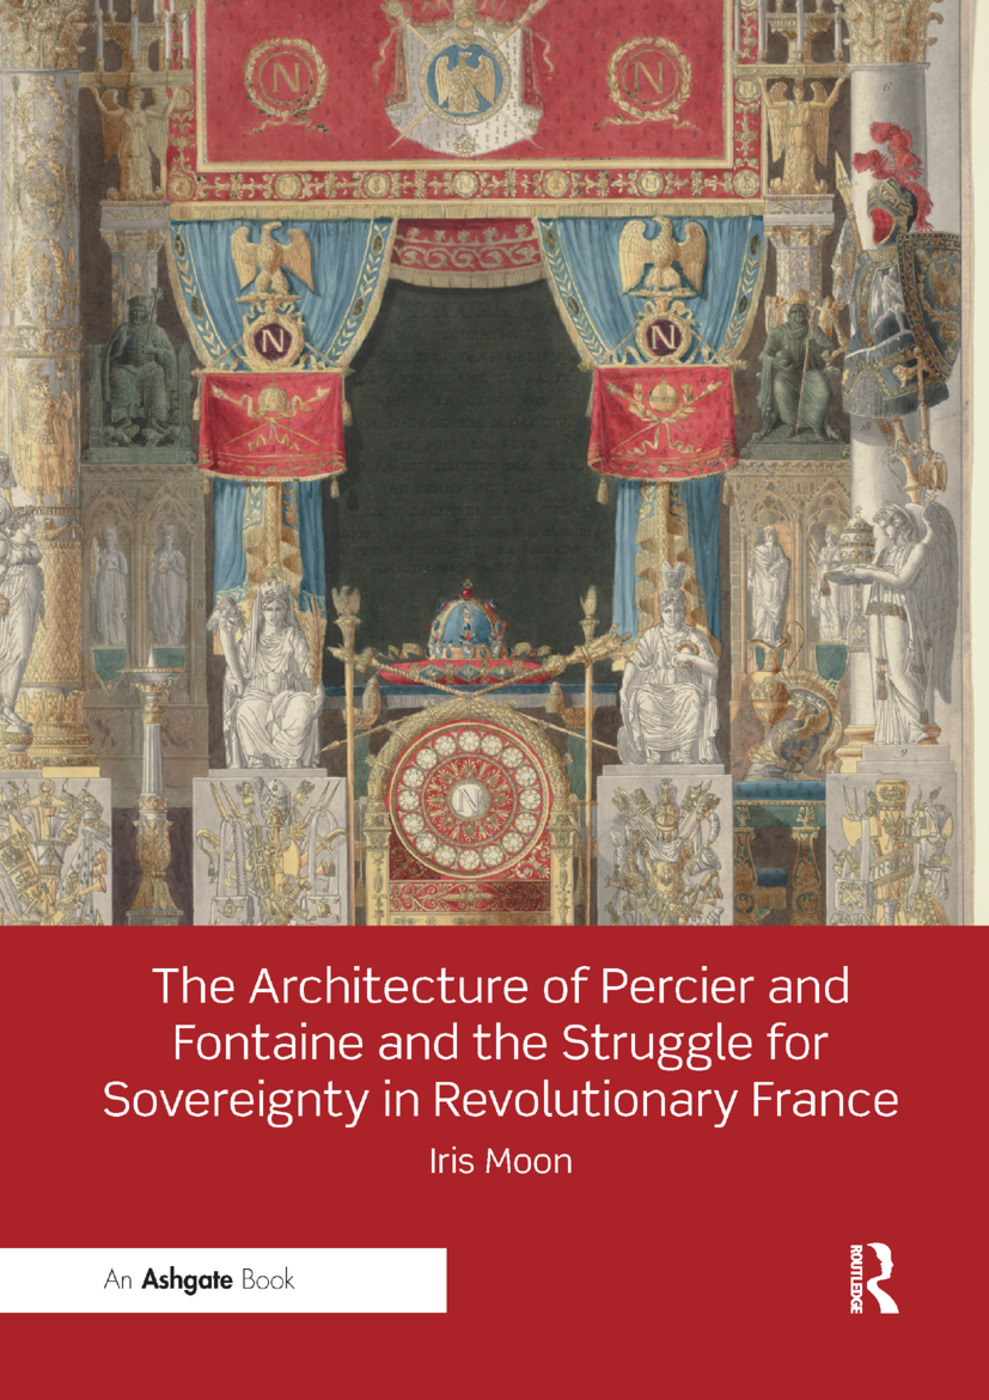 The Architecture of Percier and Fontaine and the Struggle for Sovereignty in Revolutionary France book cover